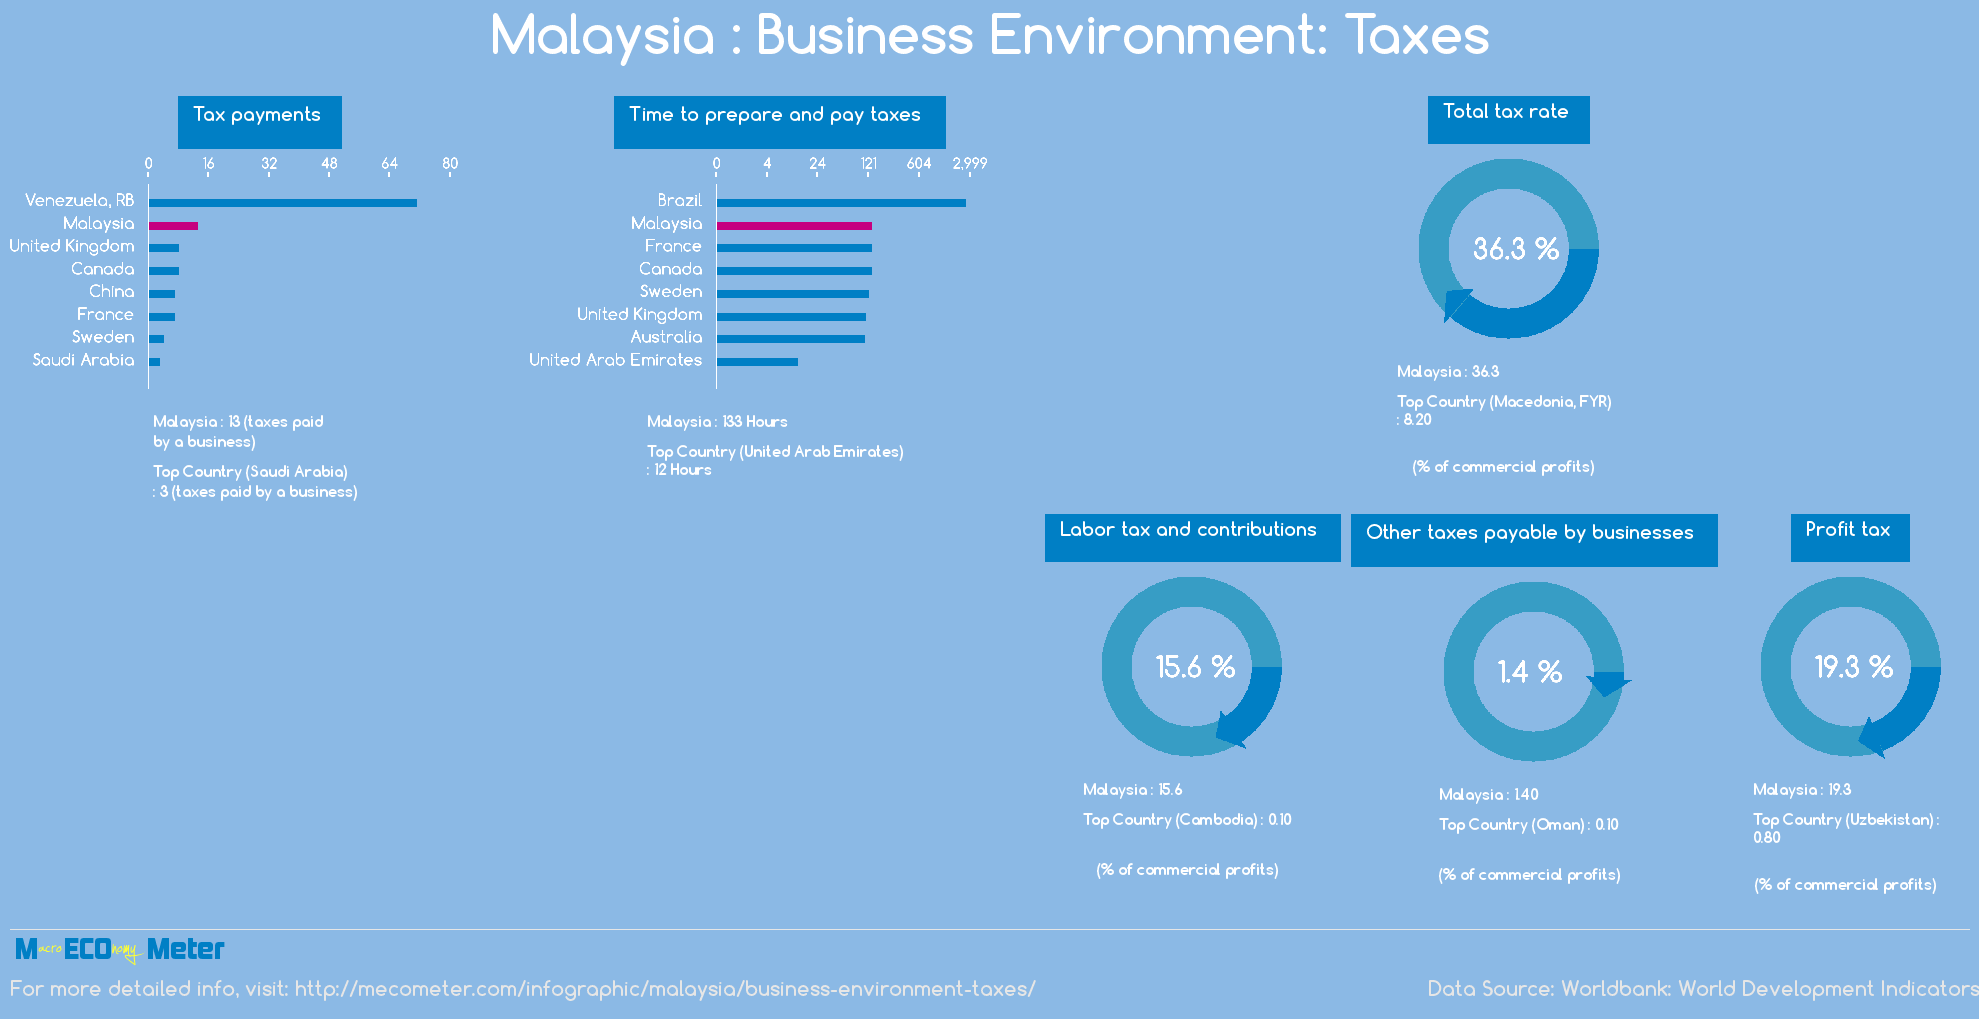 Malaysia : Business Environment: Taxes